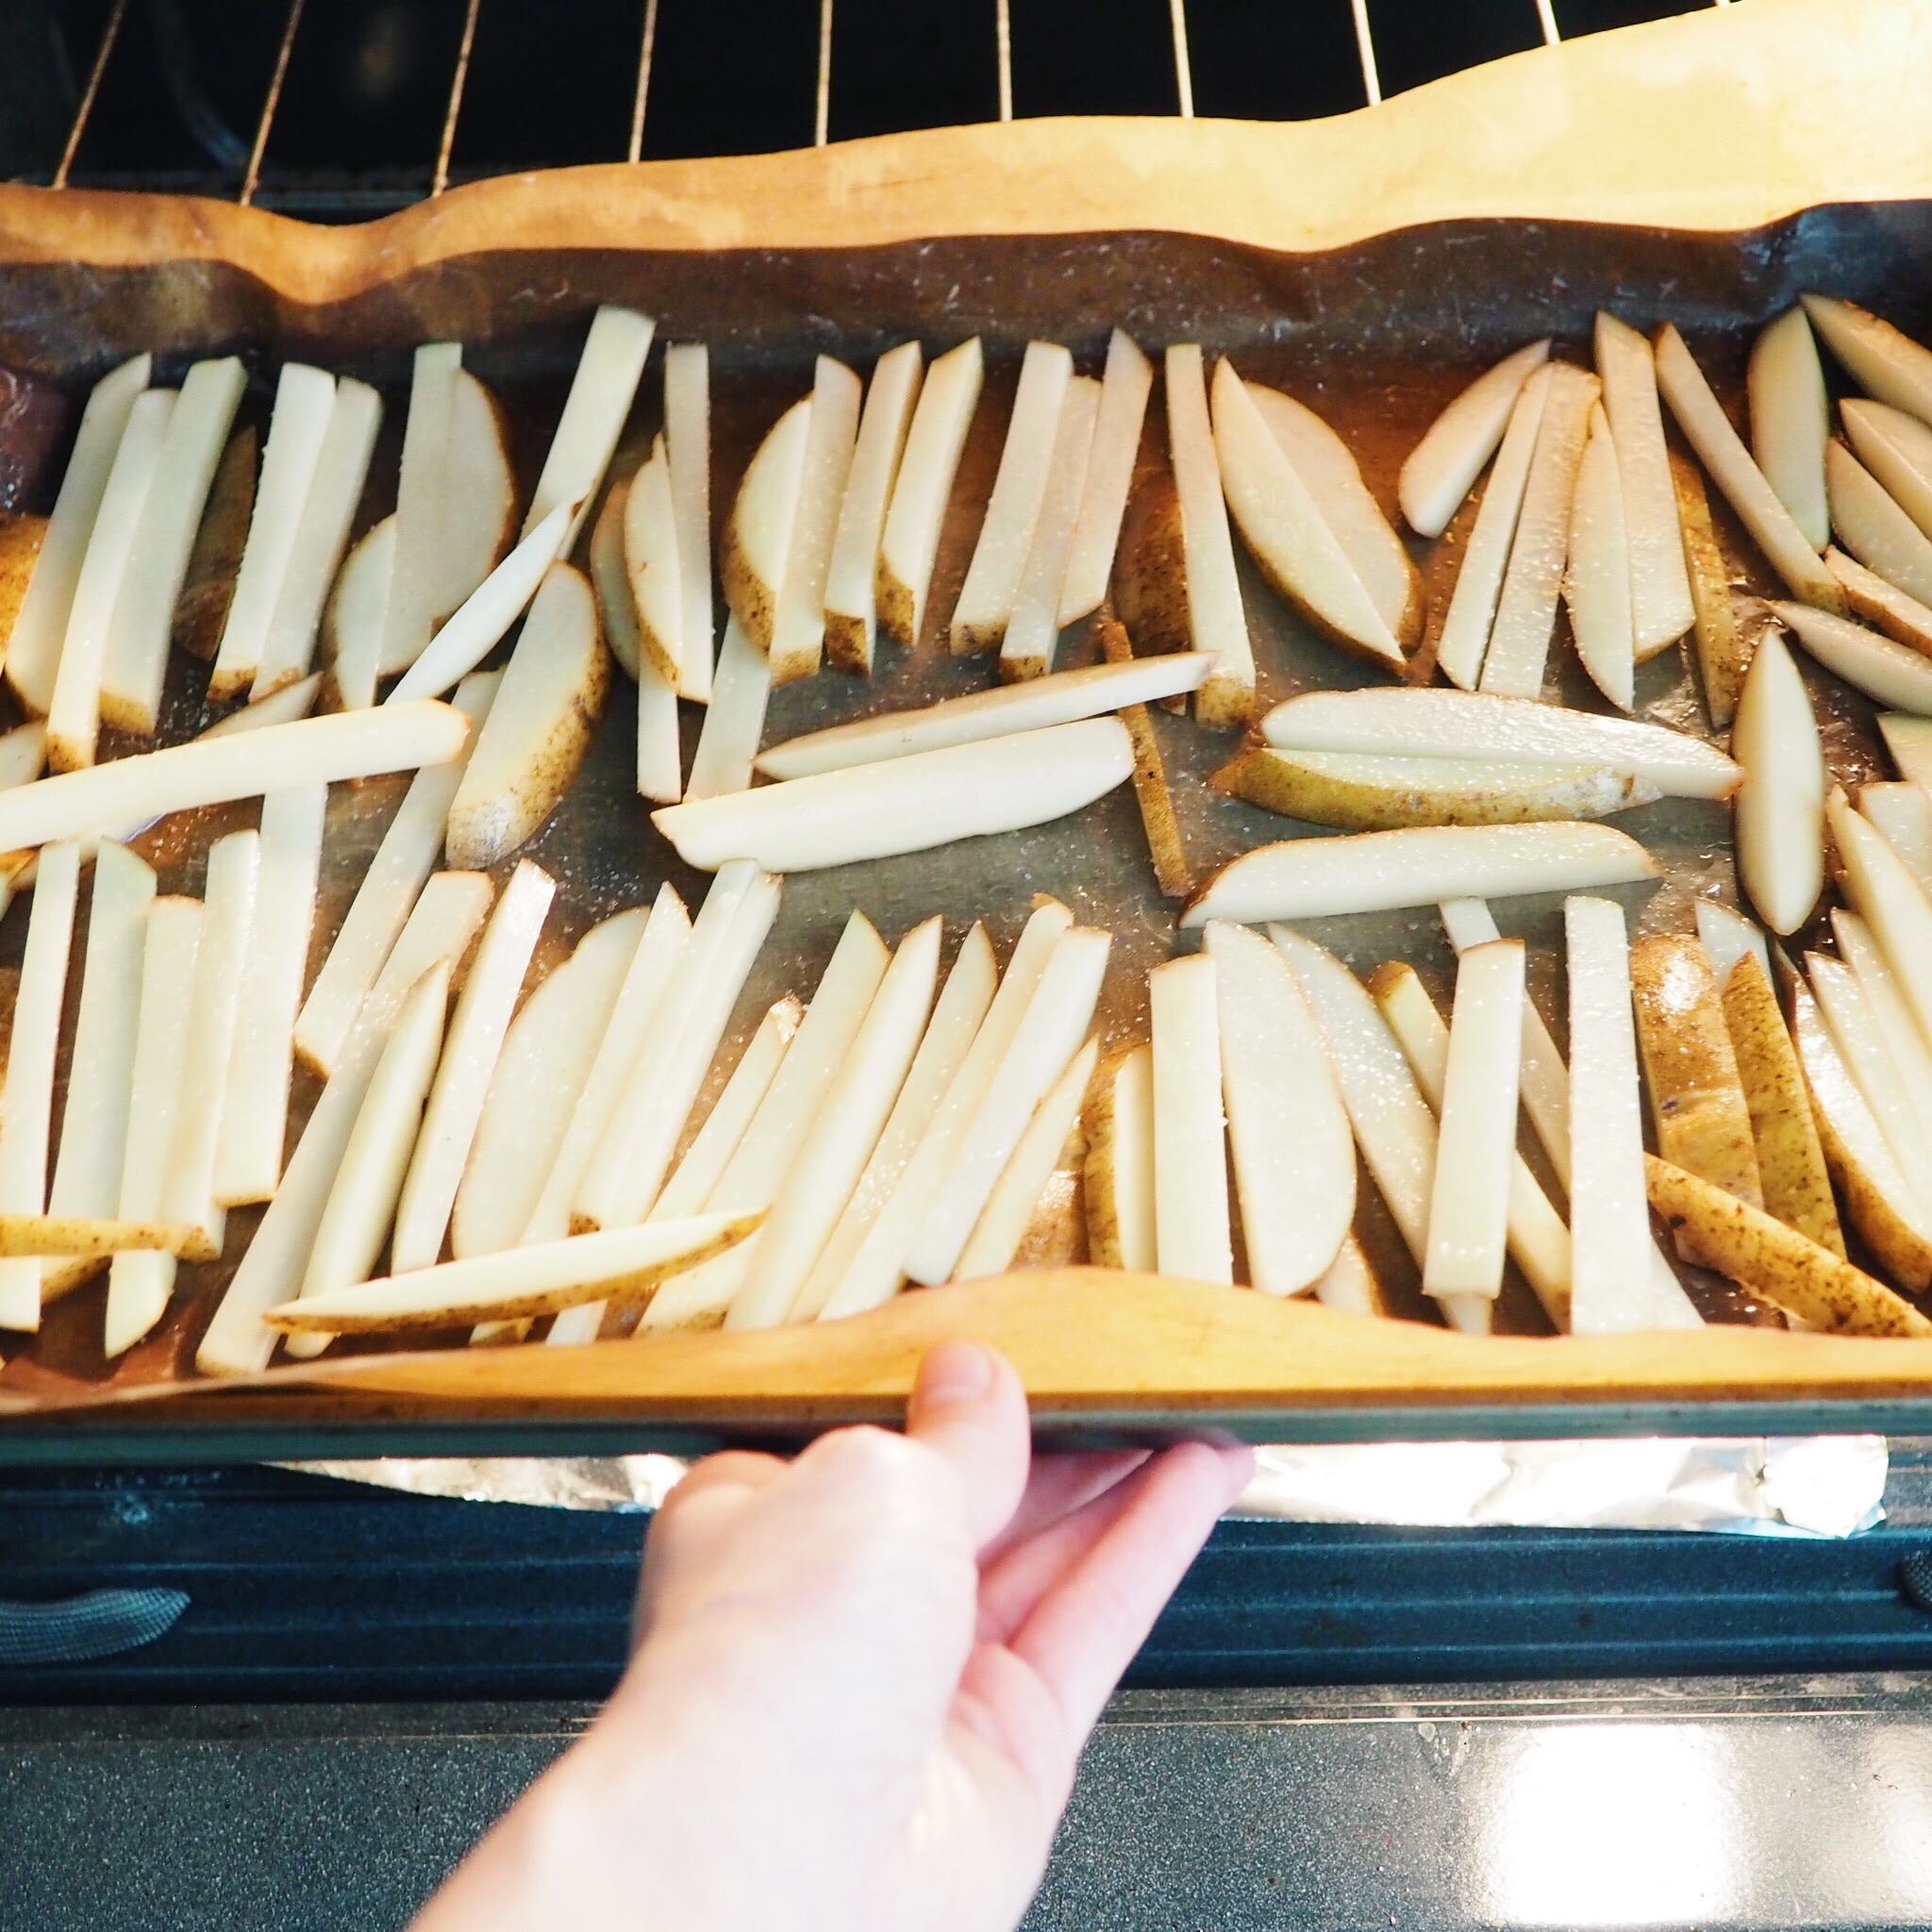 Step 7 - Bake fries for 35-40 minutes at 425 degrees F.